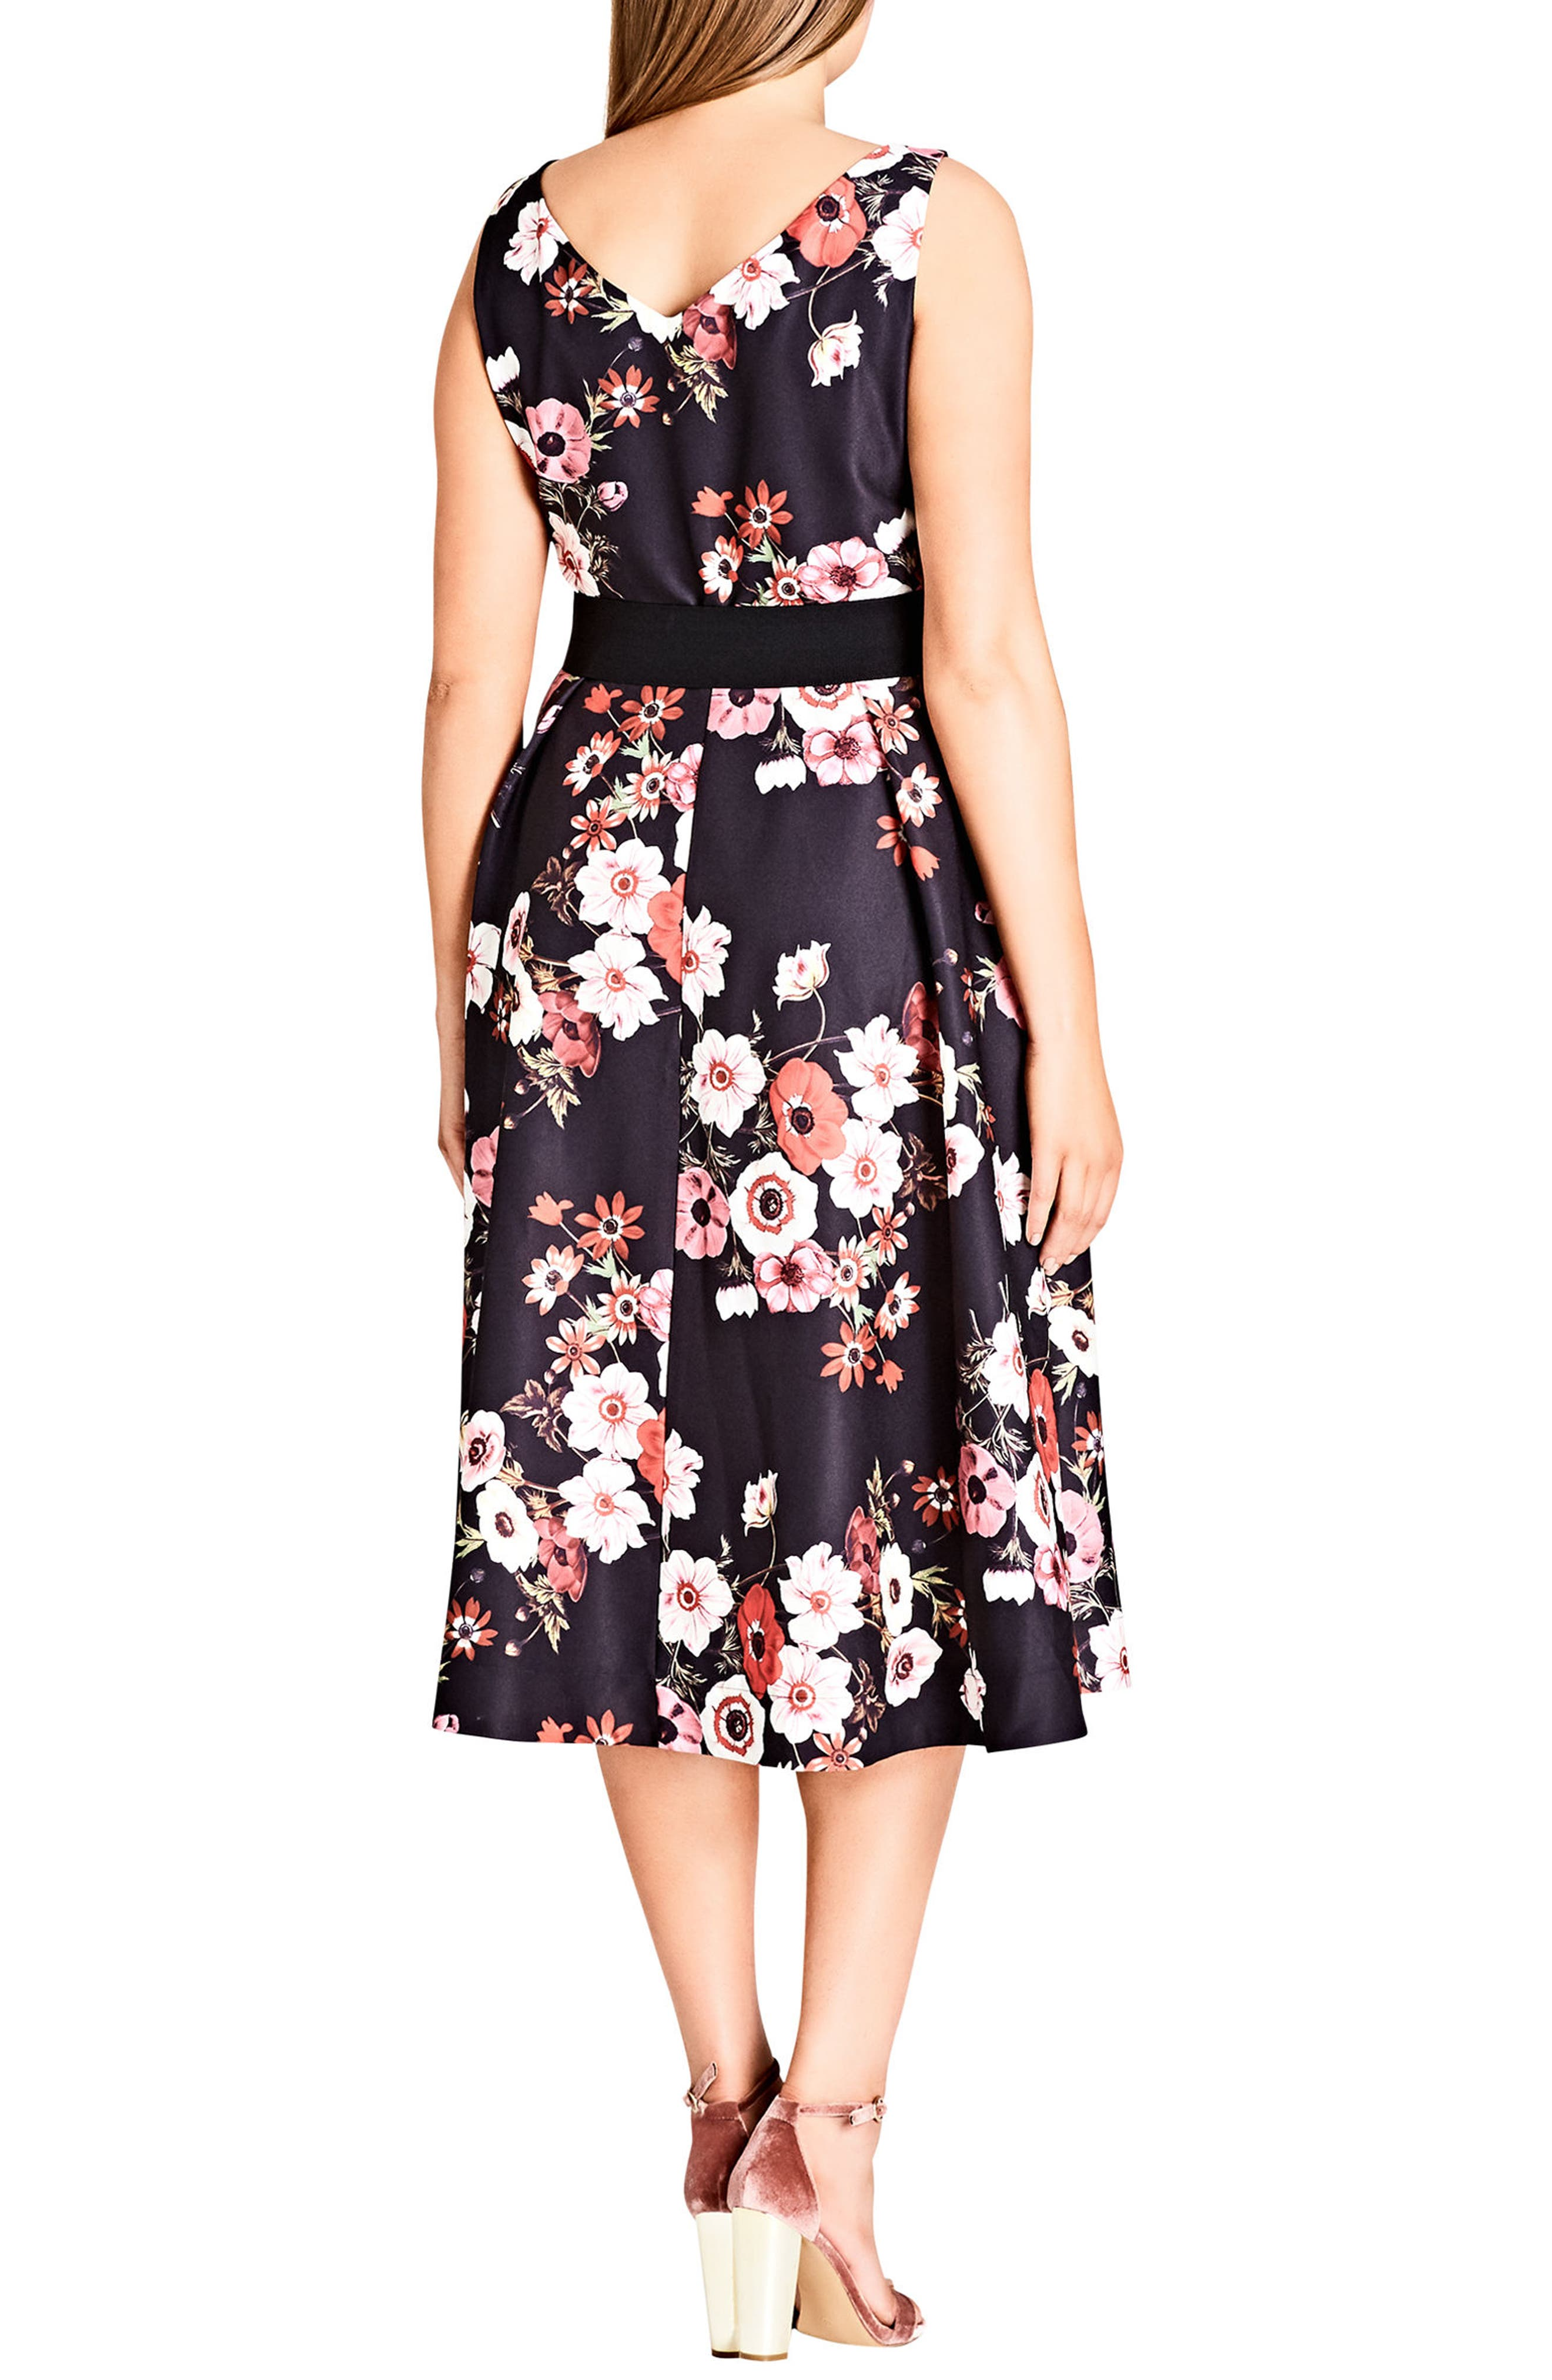 CITY CHIC,                             Poppy Bloom Fit & Flare Dress,                             Alternate thumbnail 2, color,                             001